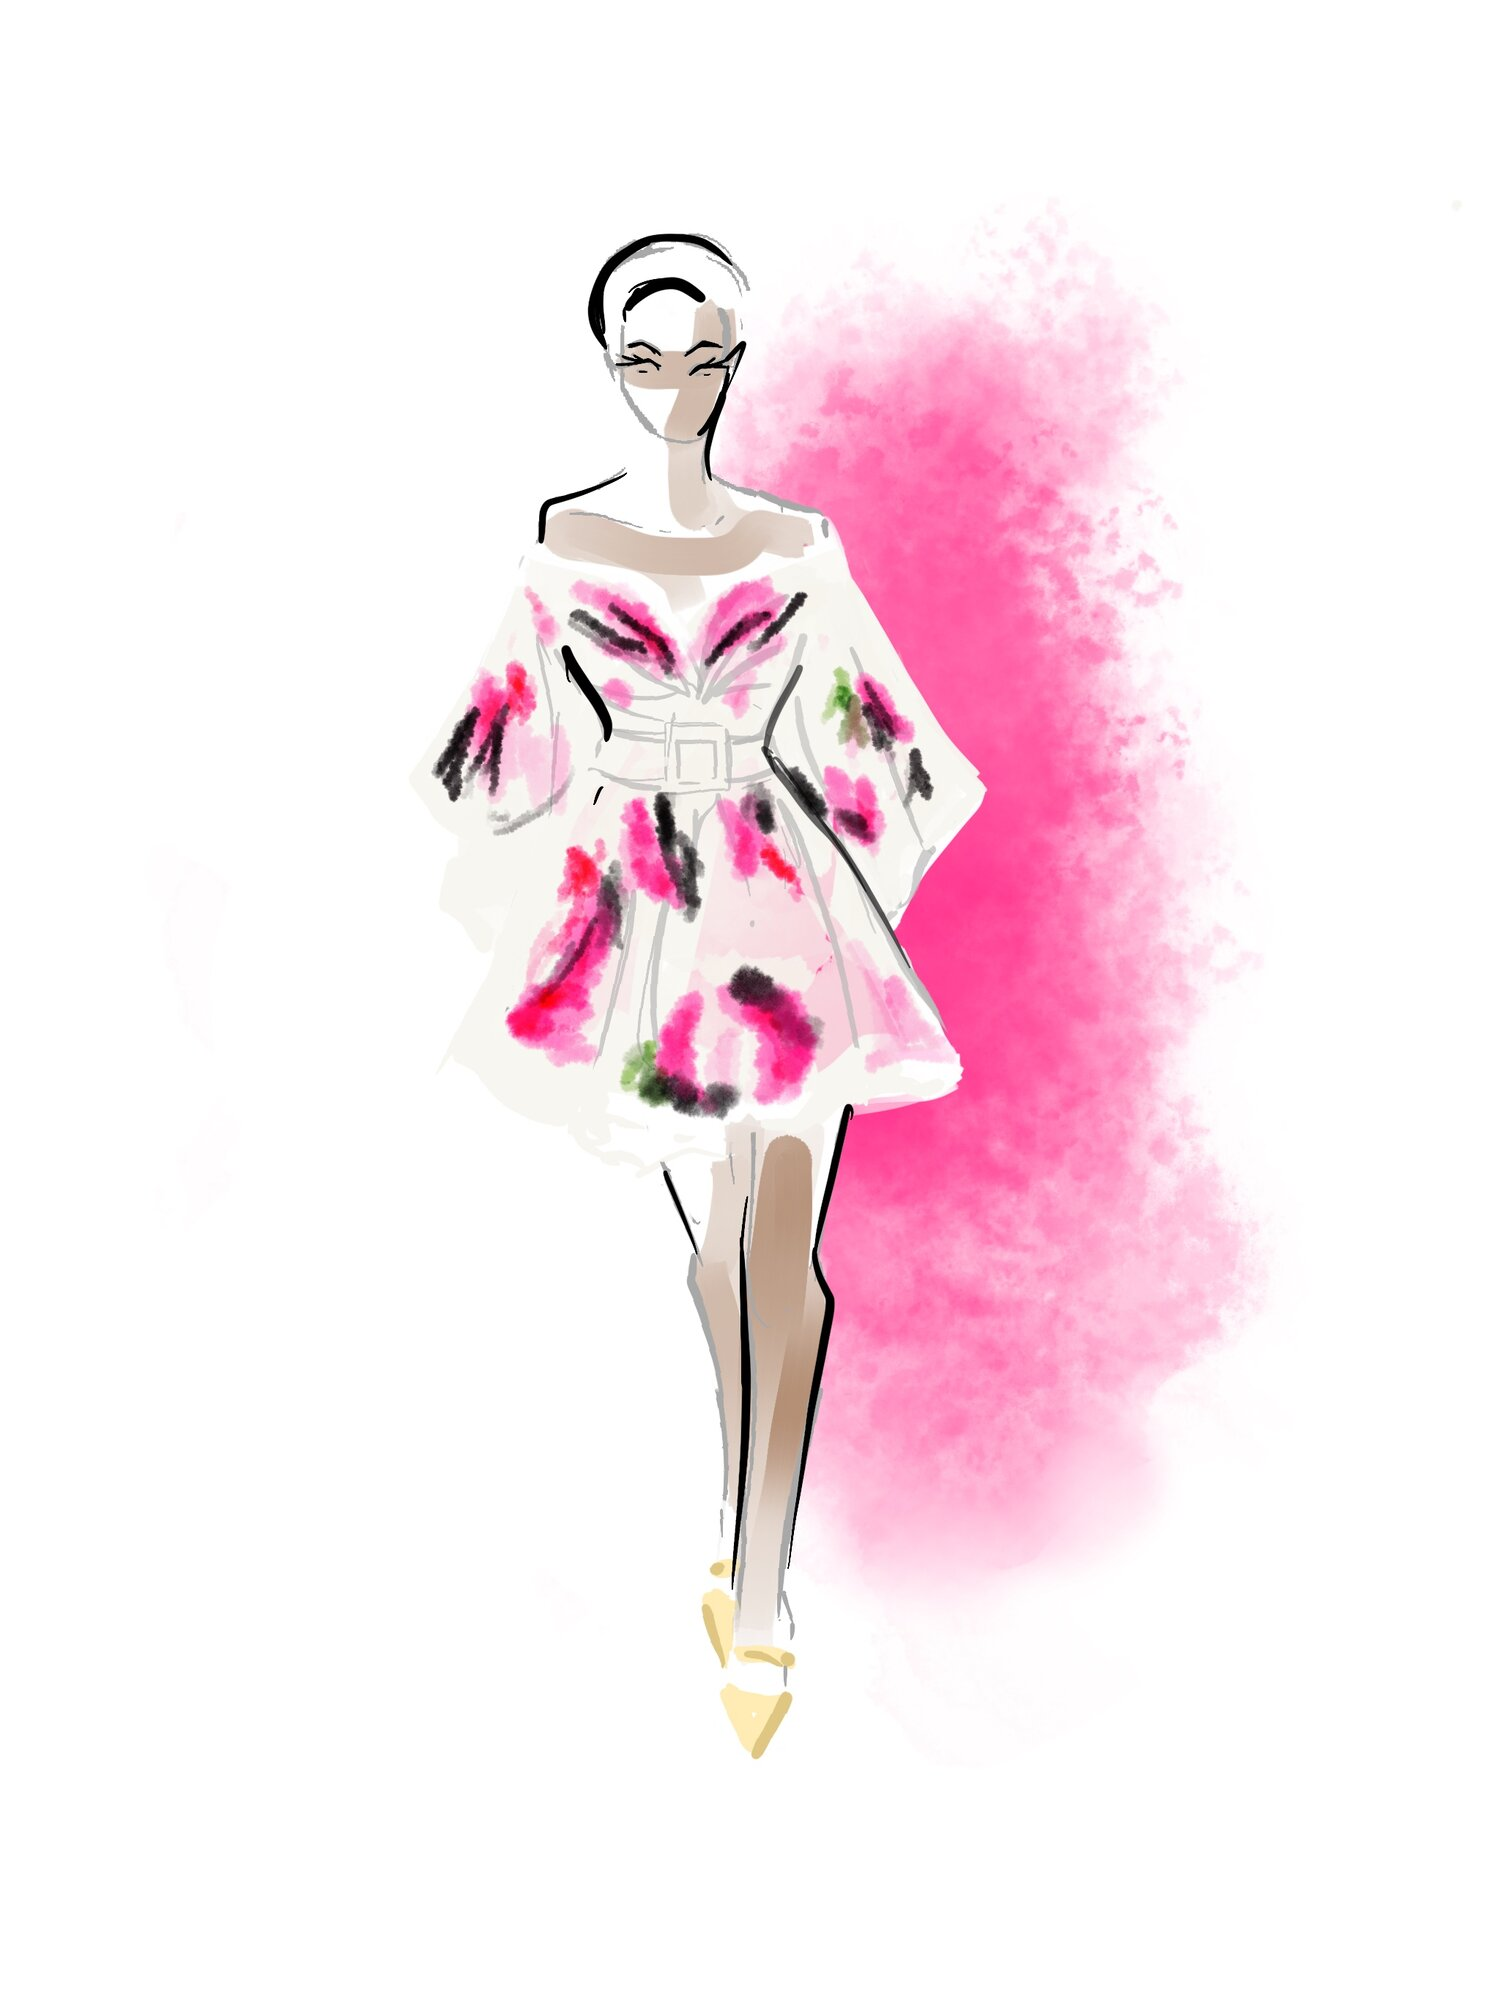 carolina-herrera-01-nyfw-fashion-illustration-by-stephanie-anne.jpg